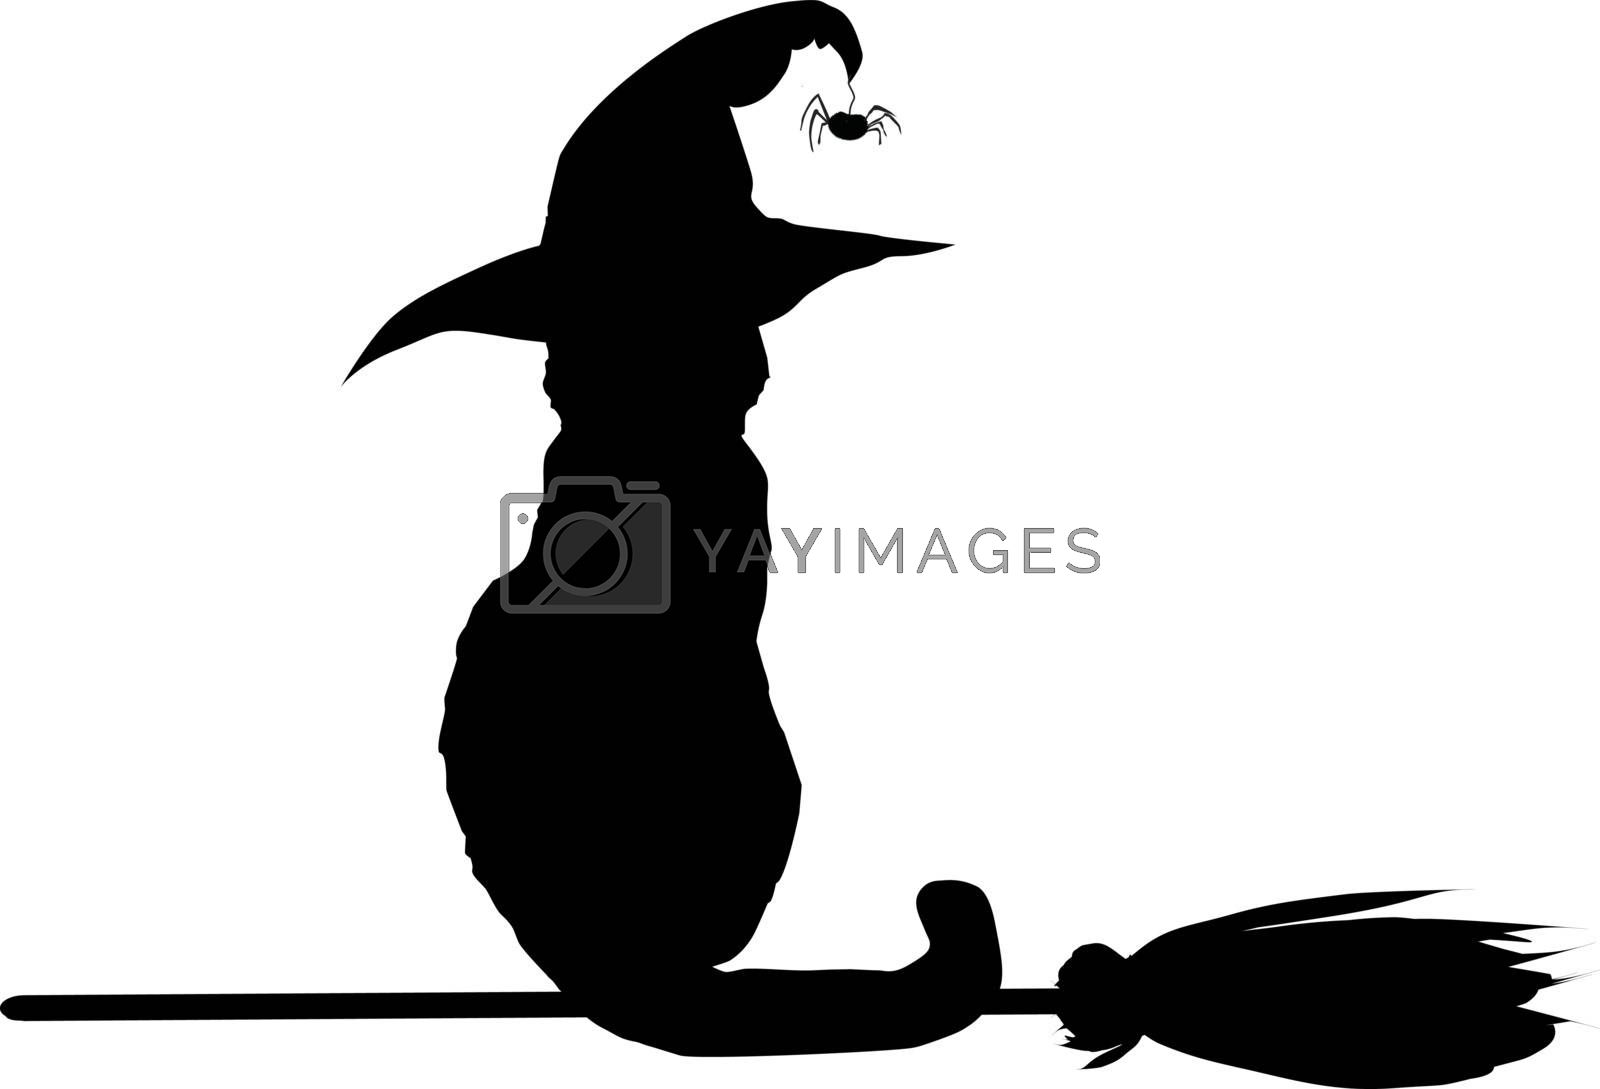 Silhouette Of Black Cat In Witch Hat Sitting On Broomstick Isola Royalty Free Stock Image Yayimages Royalty Free Stock Photos And Vectors